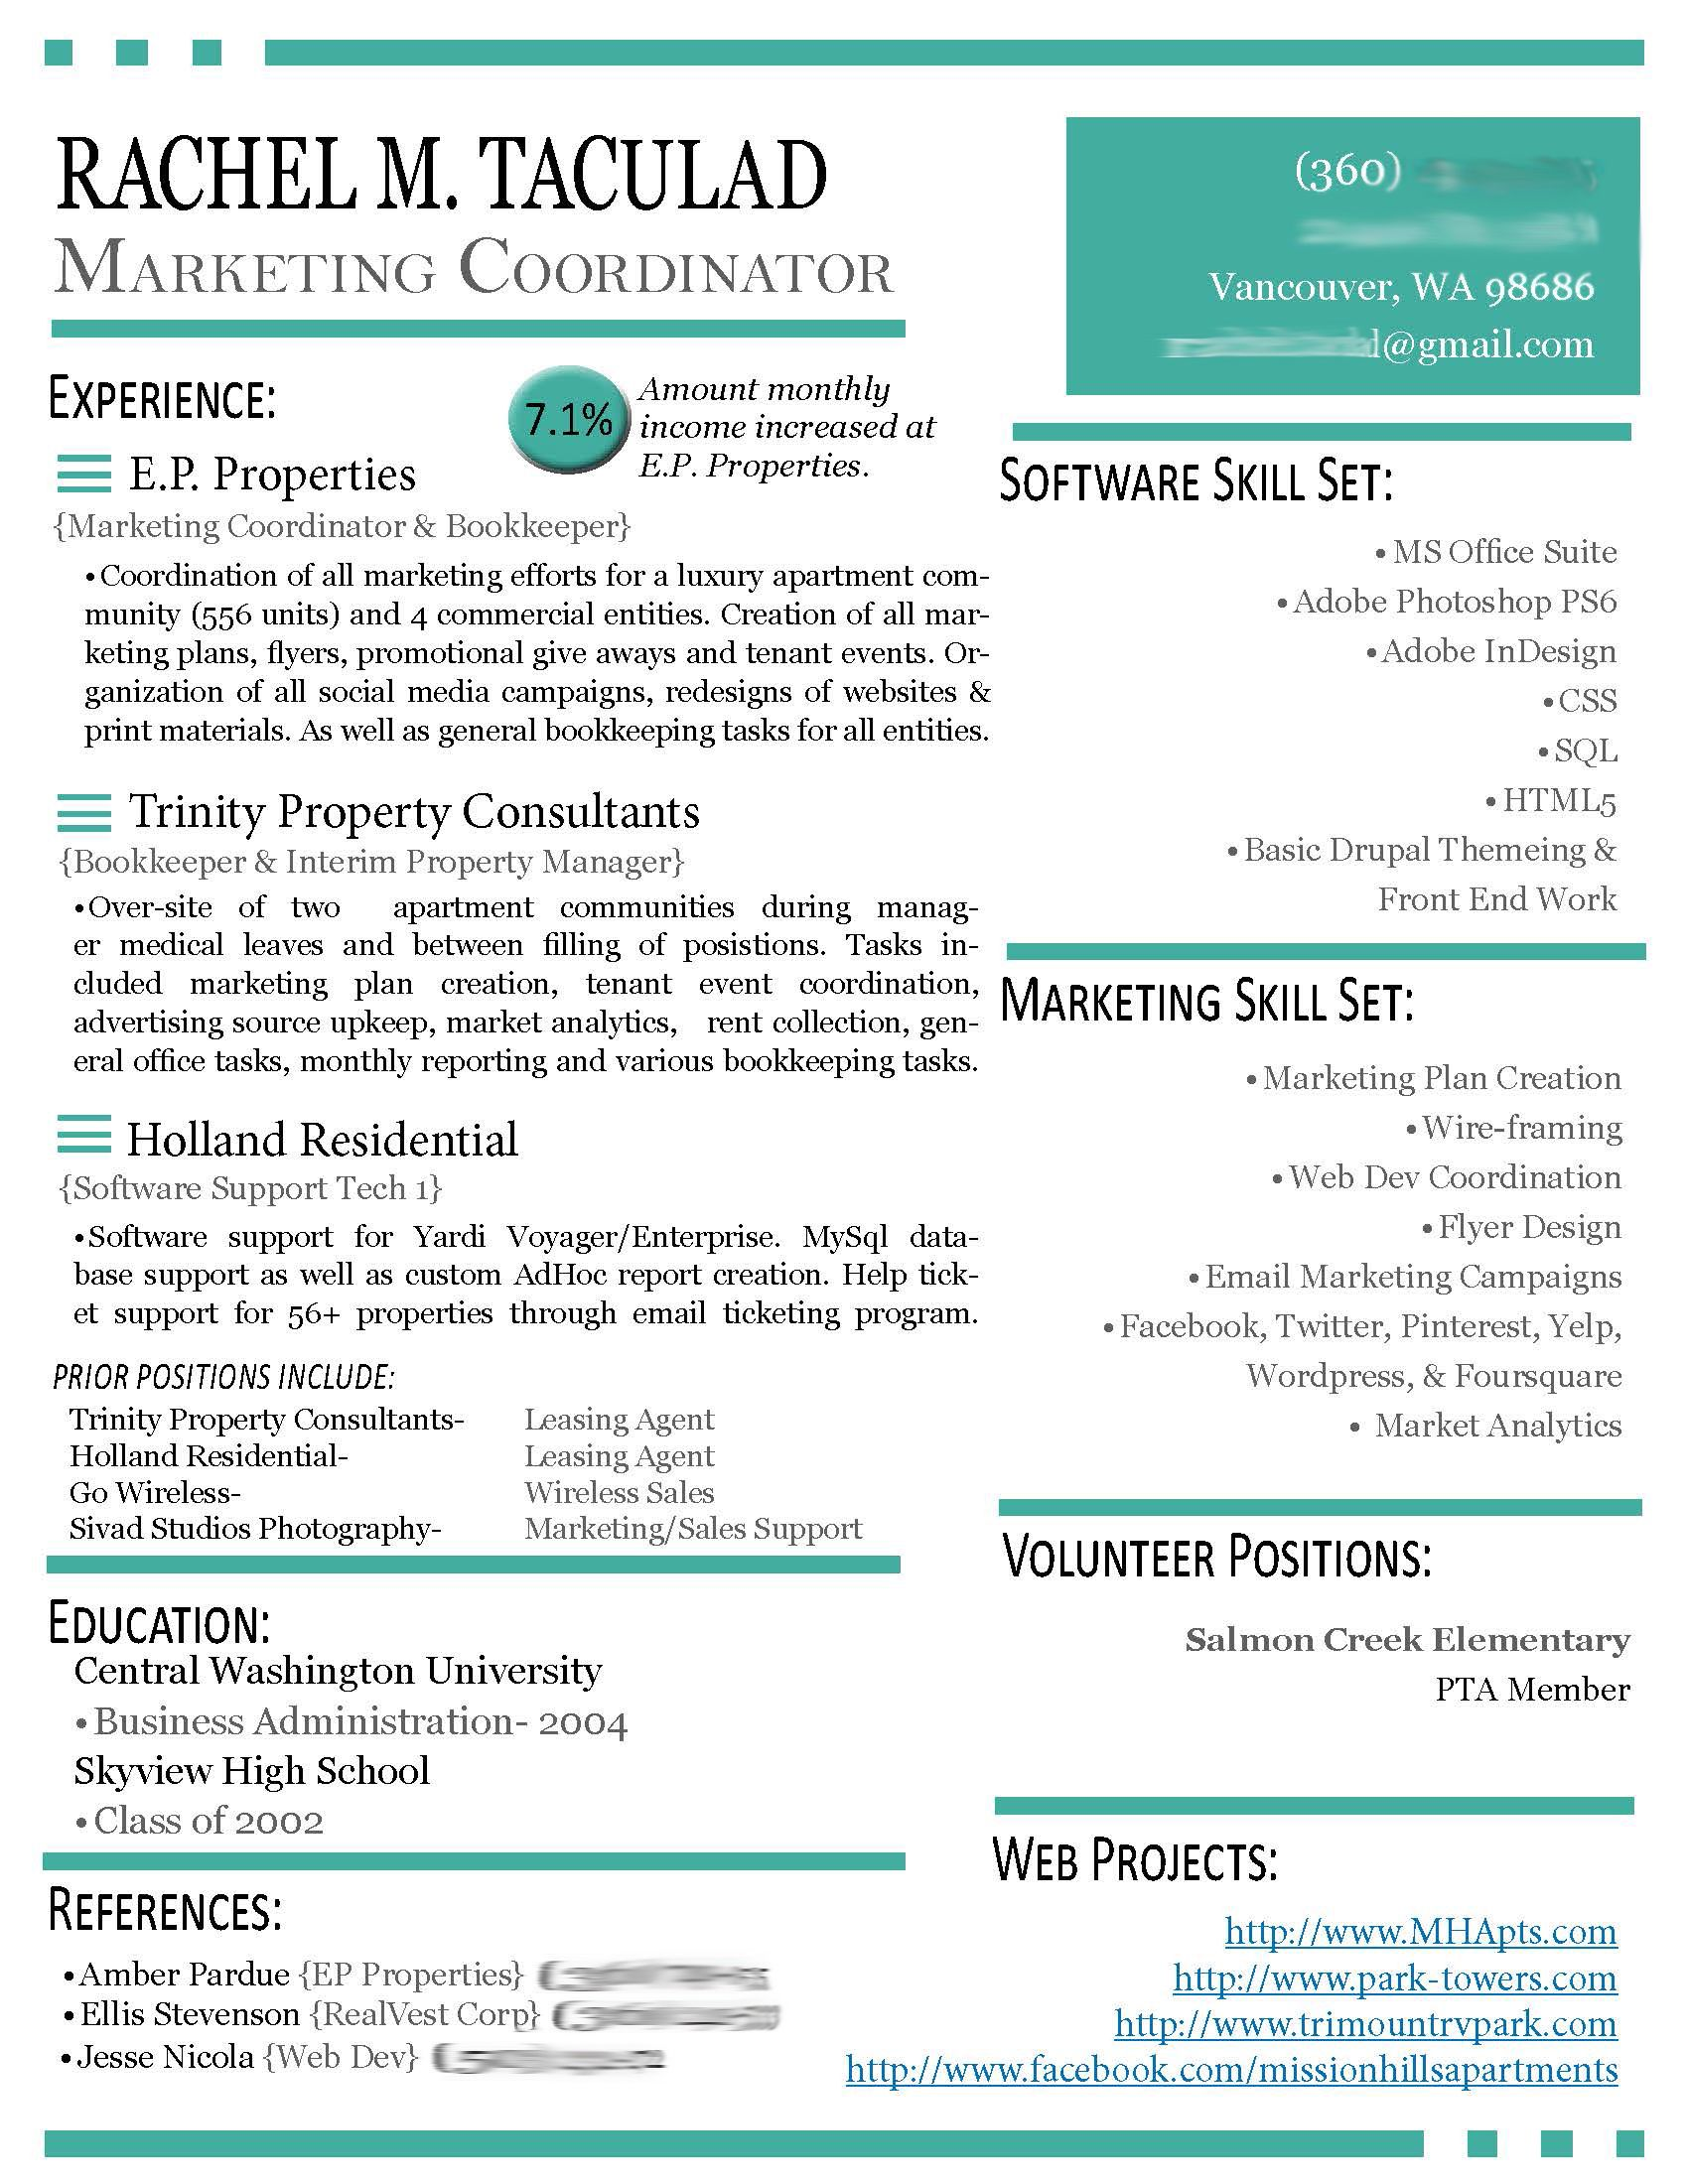 Opposenewapstandardsus  Scenic  Images About Work Stuff On Pinterest  Resume Professional  With Interesting  Images About Work Stuff On Pinterest  Resume Professional Resume Template And Resume Templates With Delightful Pictures Of Resumes Also How To Write An Effective Resume In Addition Resume Samples For College Students And Sous Chef Resume As Well As Resume For Server Additionally Objective On Resume Example From Pinterestcom With Opposenewapstandardsus  Interesting  Images About Work Stuff On Pinterest  Resume Professional  With Delightful  Images About Work Stuff On Pinterest  Resume Professional Resume Template And Resume Templates And Scenic Pictures Of Resumes Also How To Write An Effective Resume In Addition Resume Samples For College Students From Pinterestcom